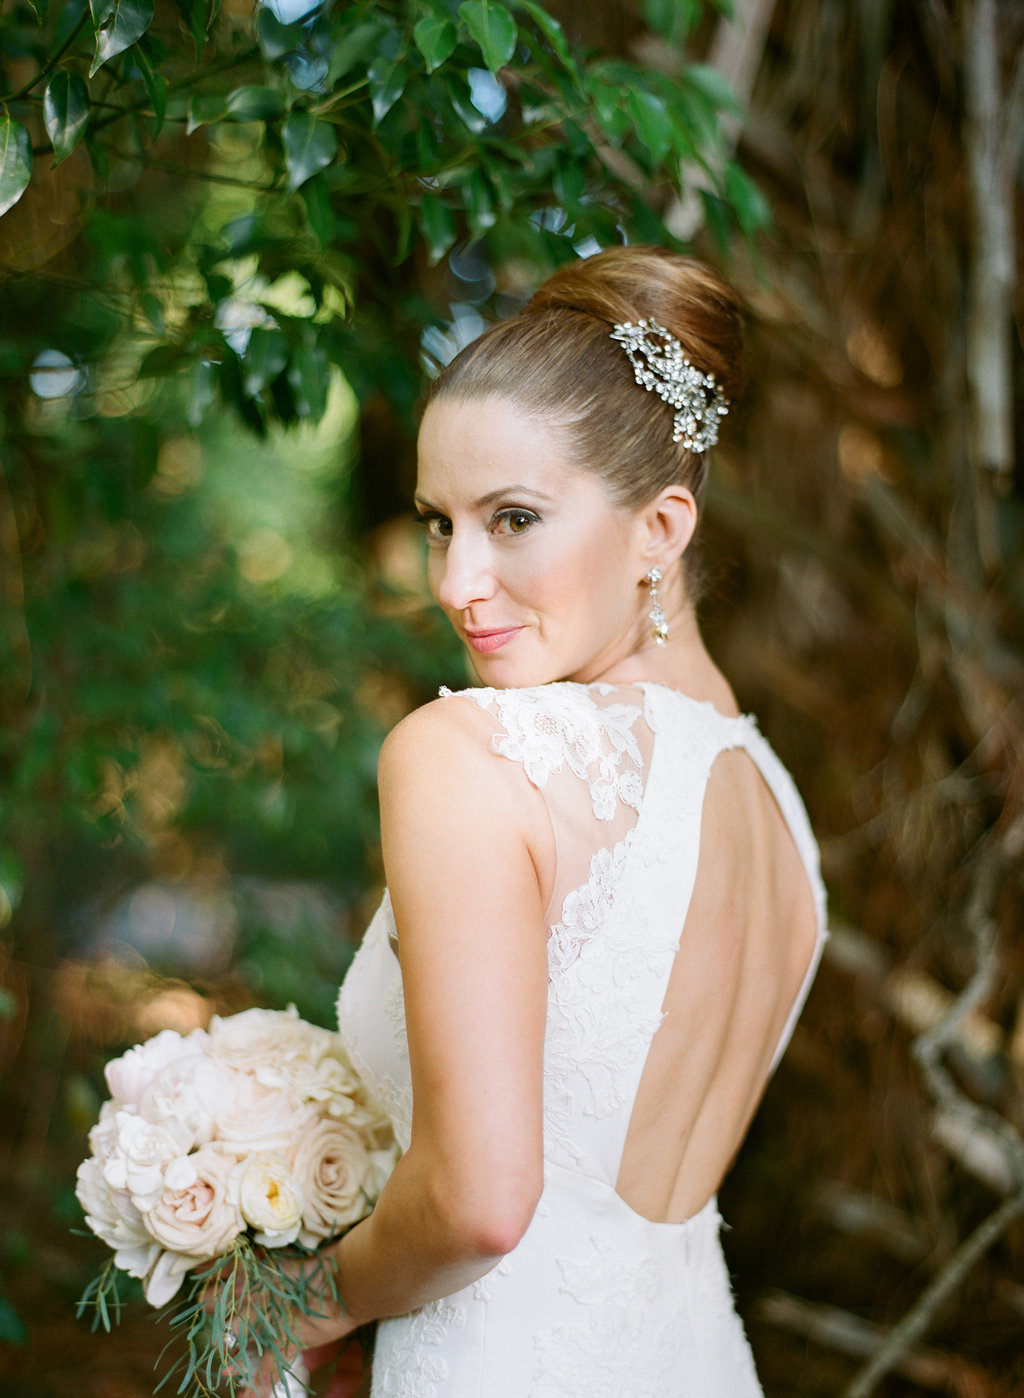 bride posing in front of greenery with elegant high bun